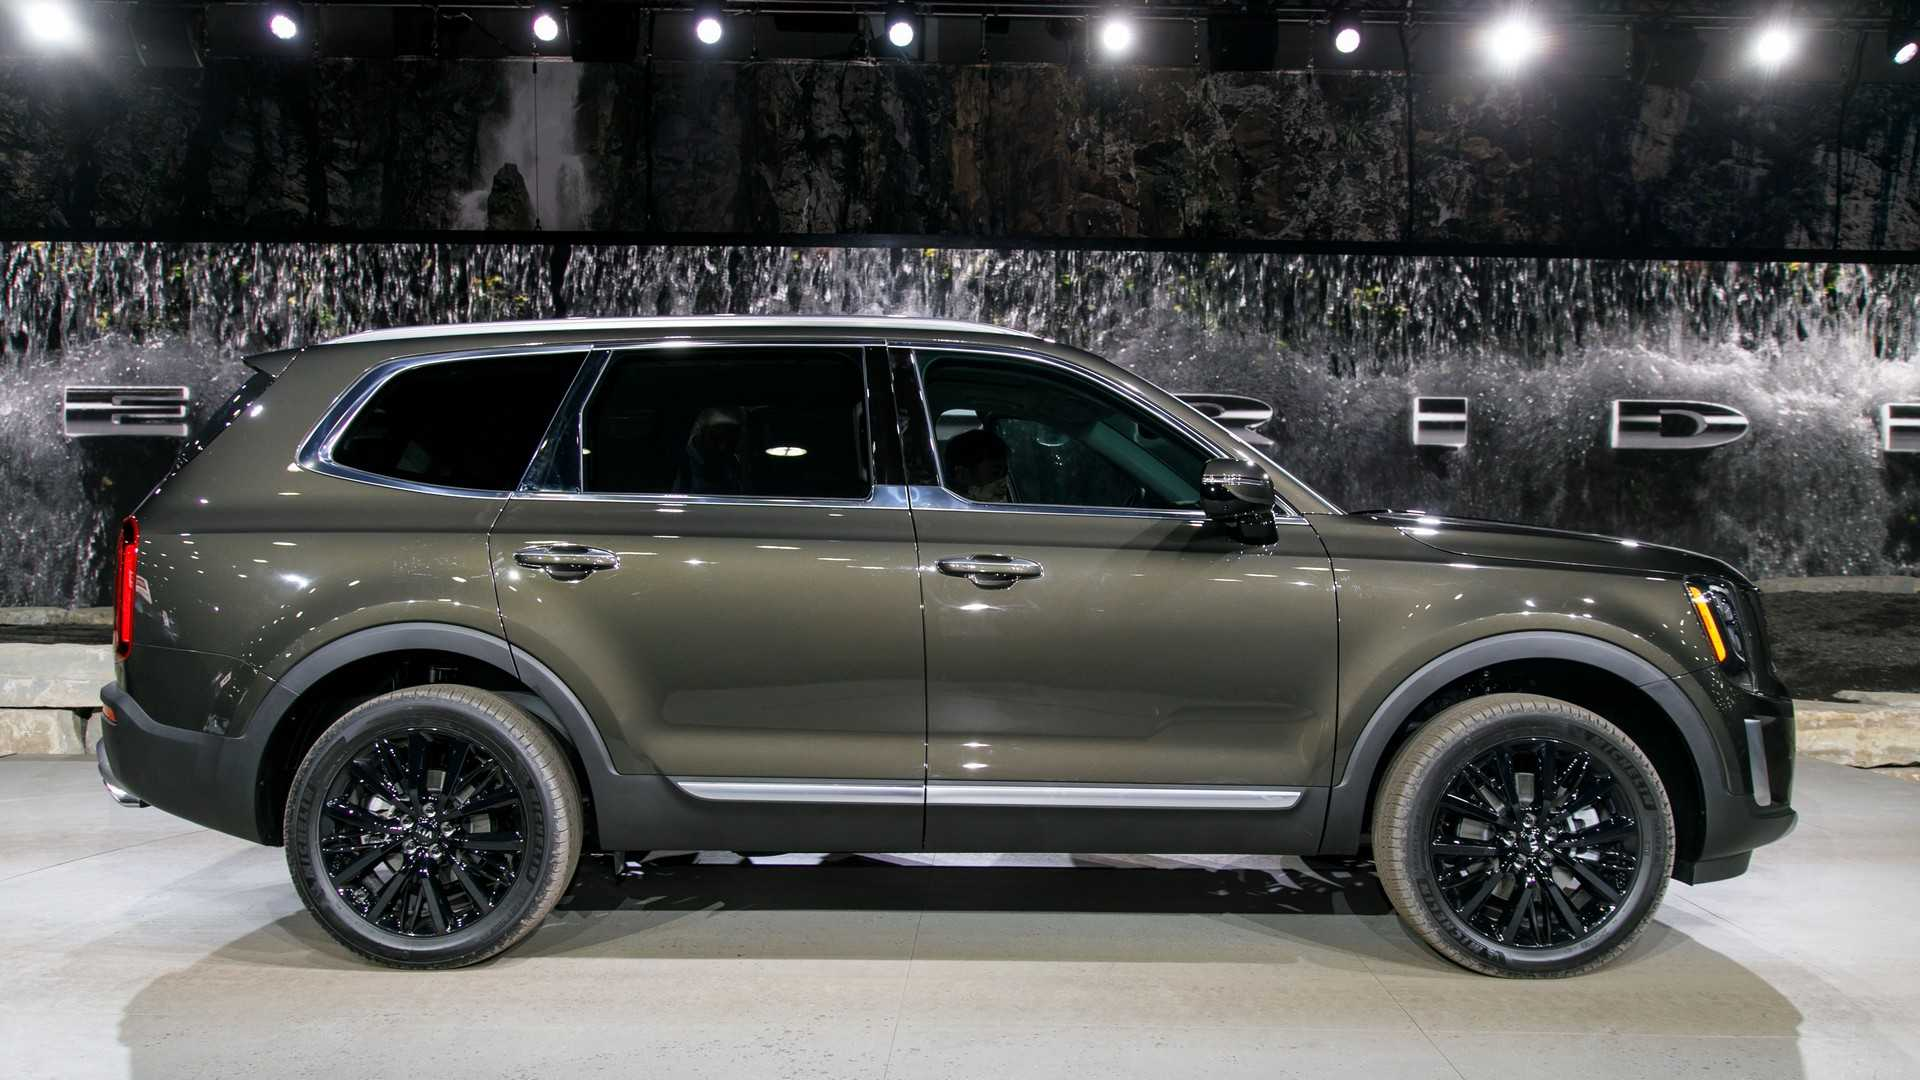 68 Best Review 2020 Kia Telluride Dimensions Pictures by 2020 Kia Telluride Dimensions